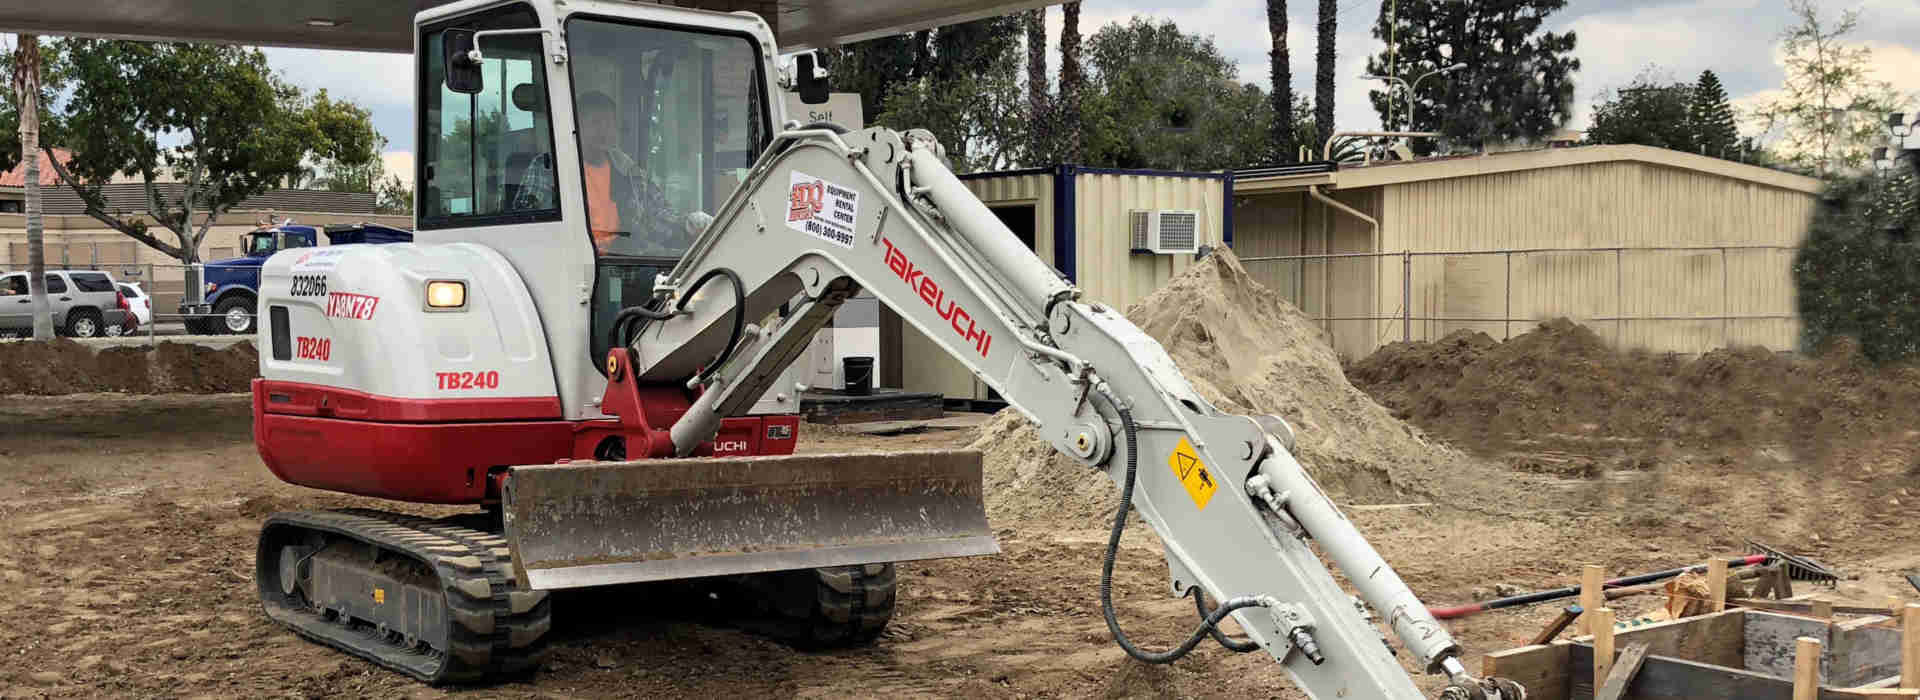 Tool & Equipment Rentals in Los Angeles